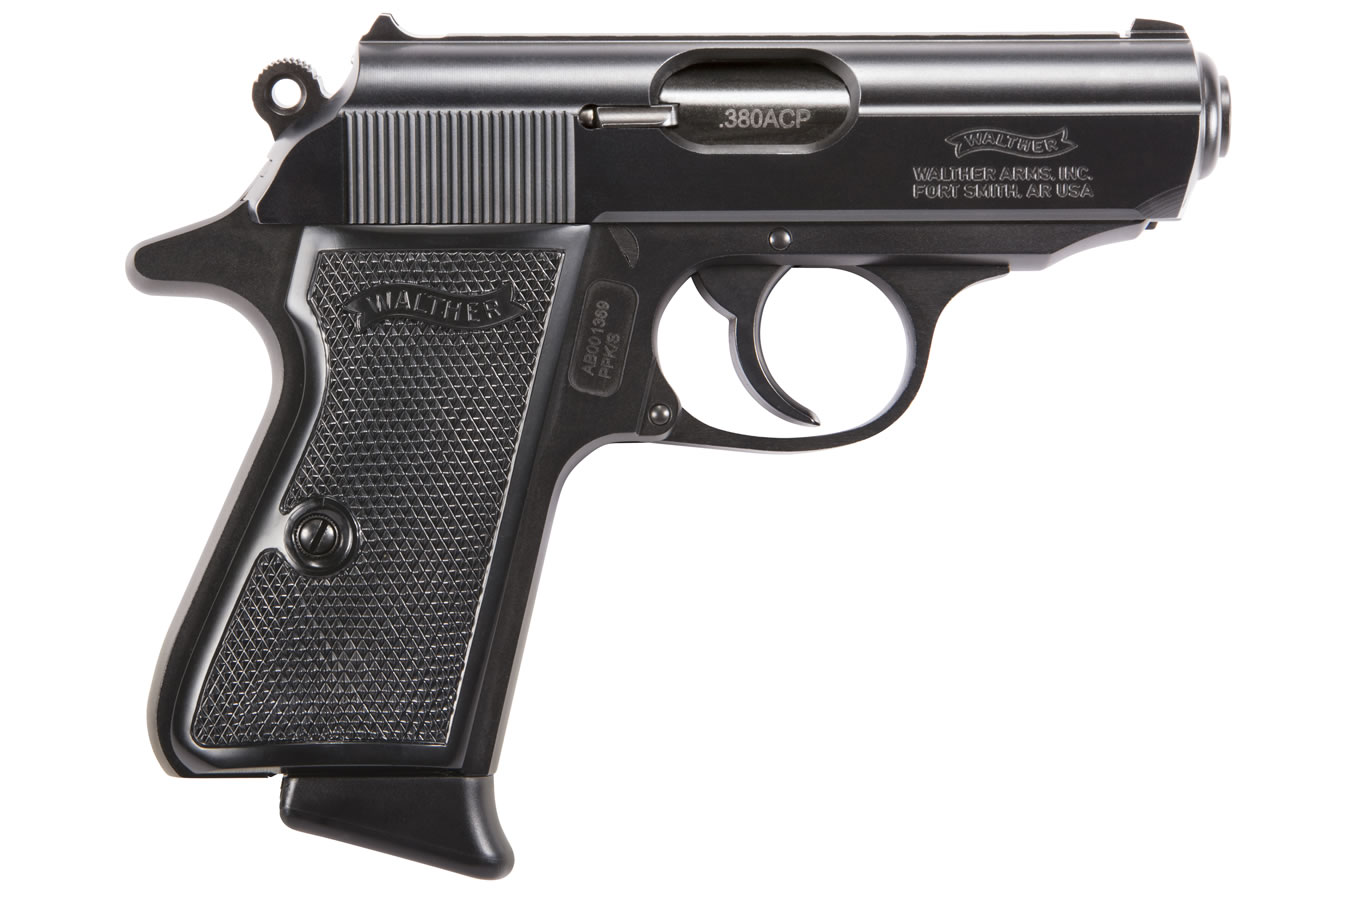 PPK/S 380 ACP BLACK CARRY CONCEAL PISTOL